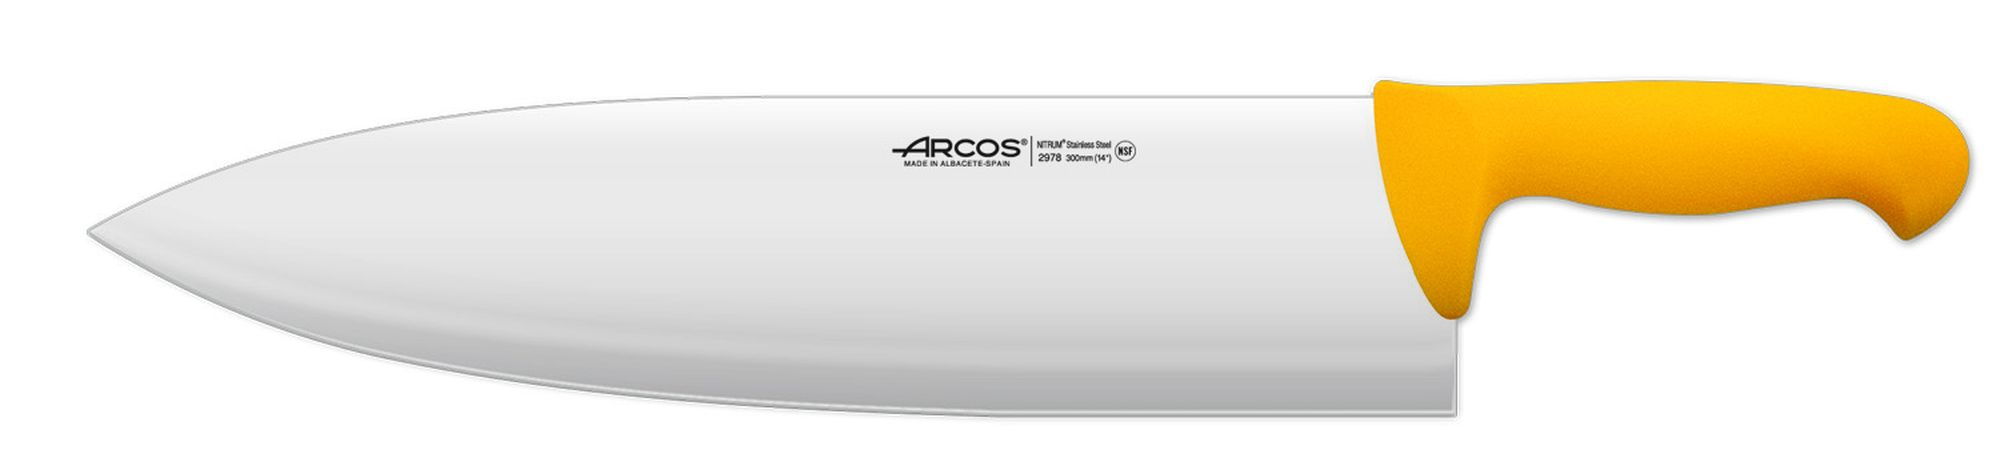 Roma Knife Arcos ref.: 297800